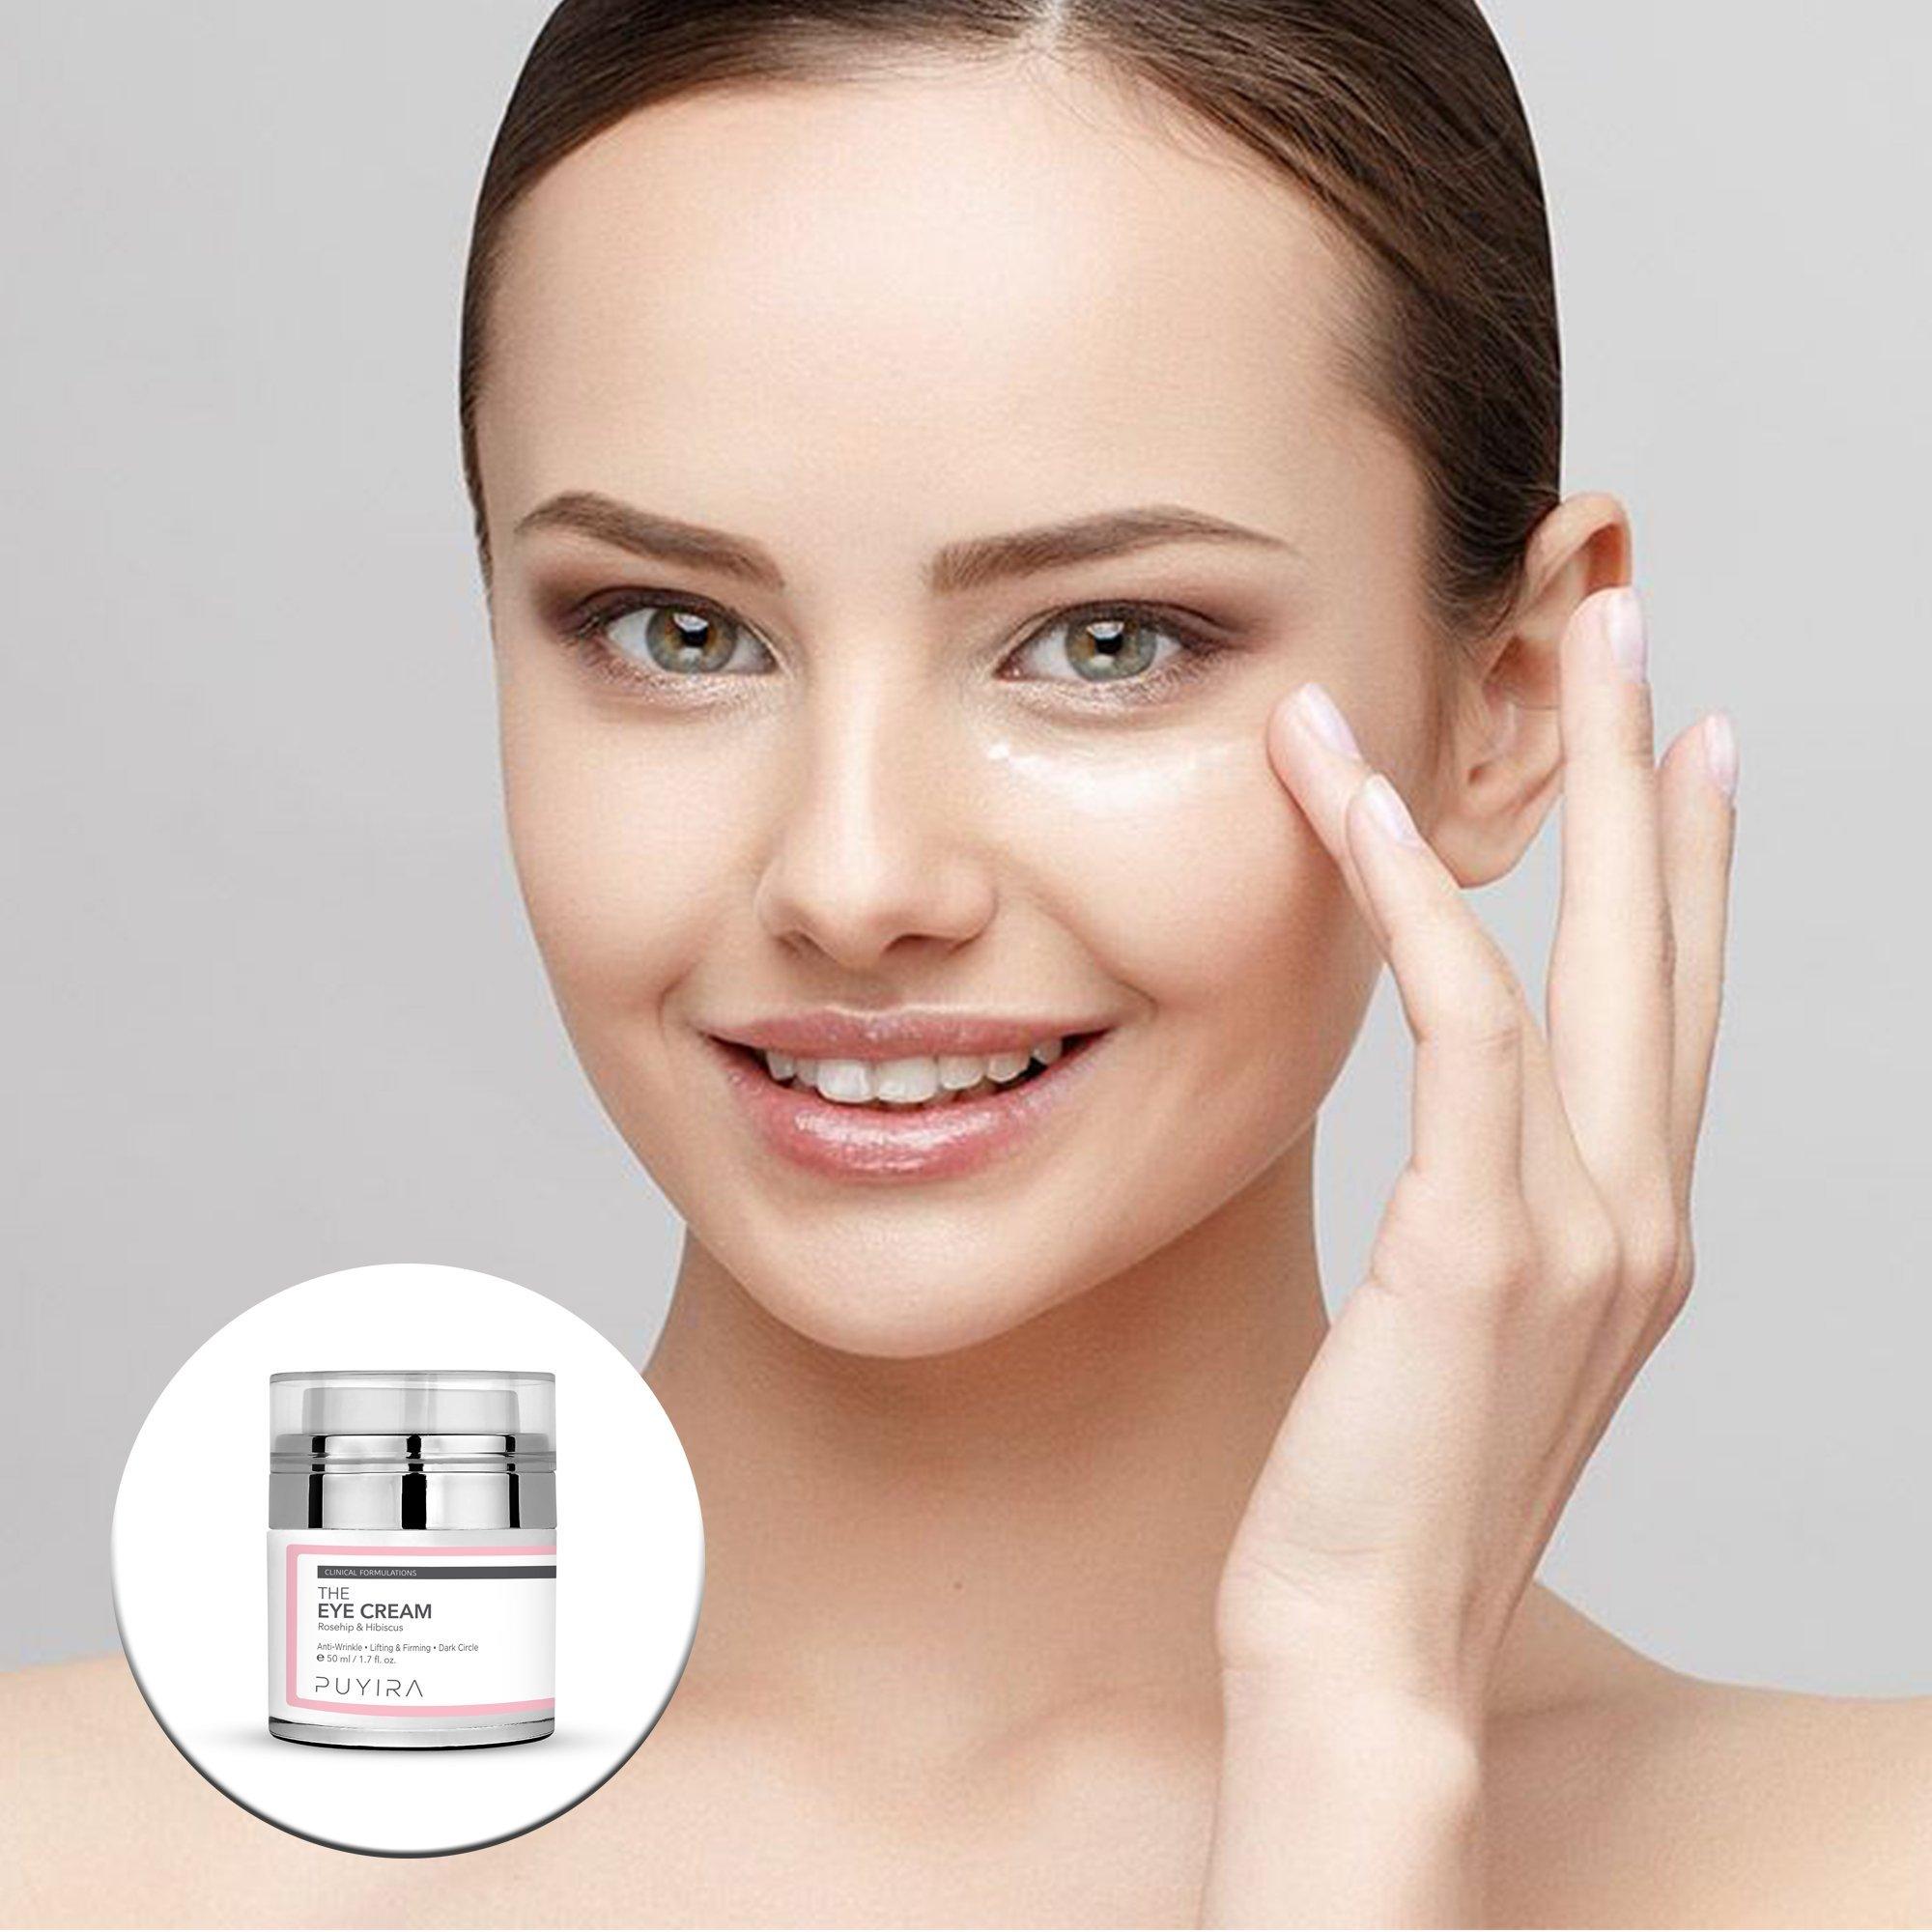 PUYIRA Rosehip Eye Cream Moisturizer , 1.7 fl.oz - Reducing Puffiness and Bags, Erasing Fine Lines and Wrinkles, Brightening Dark Circles by PUYIRA (Image #9)